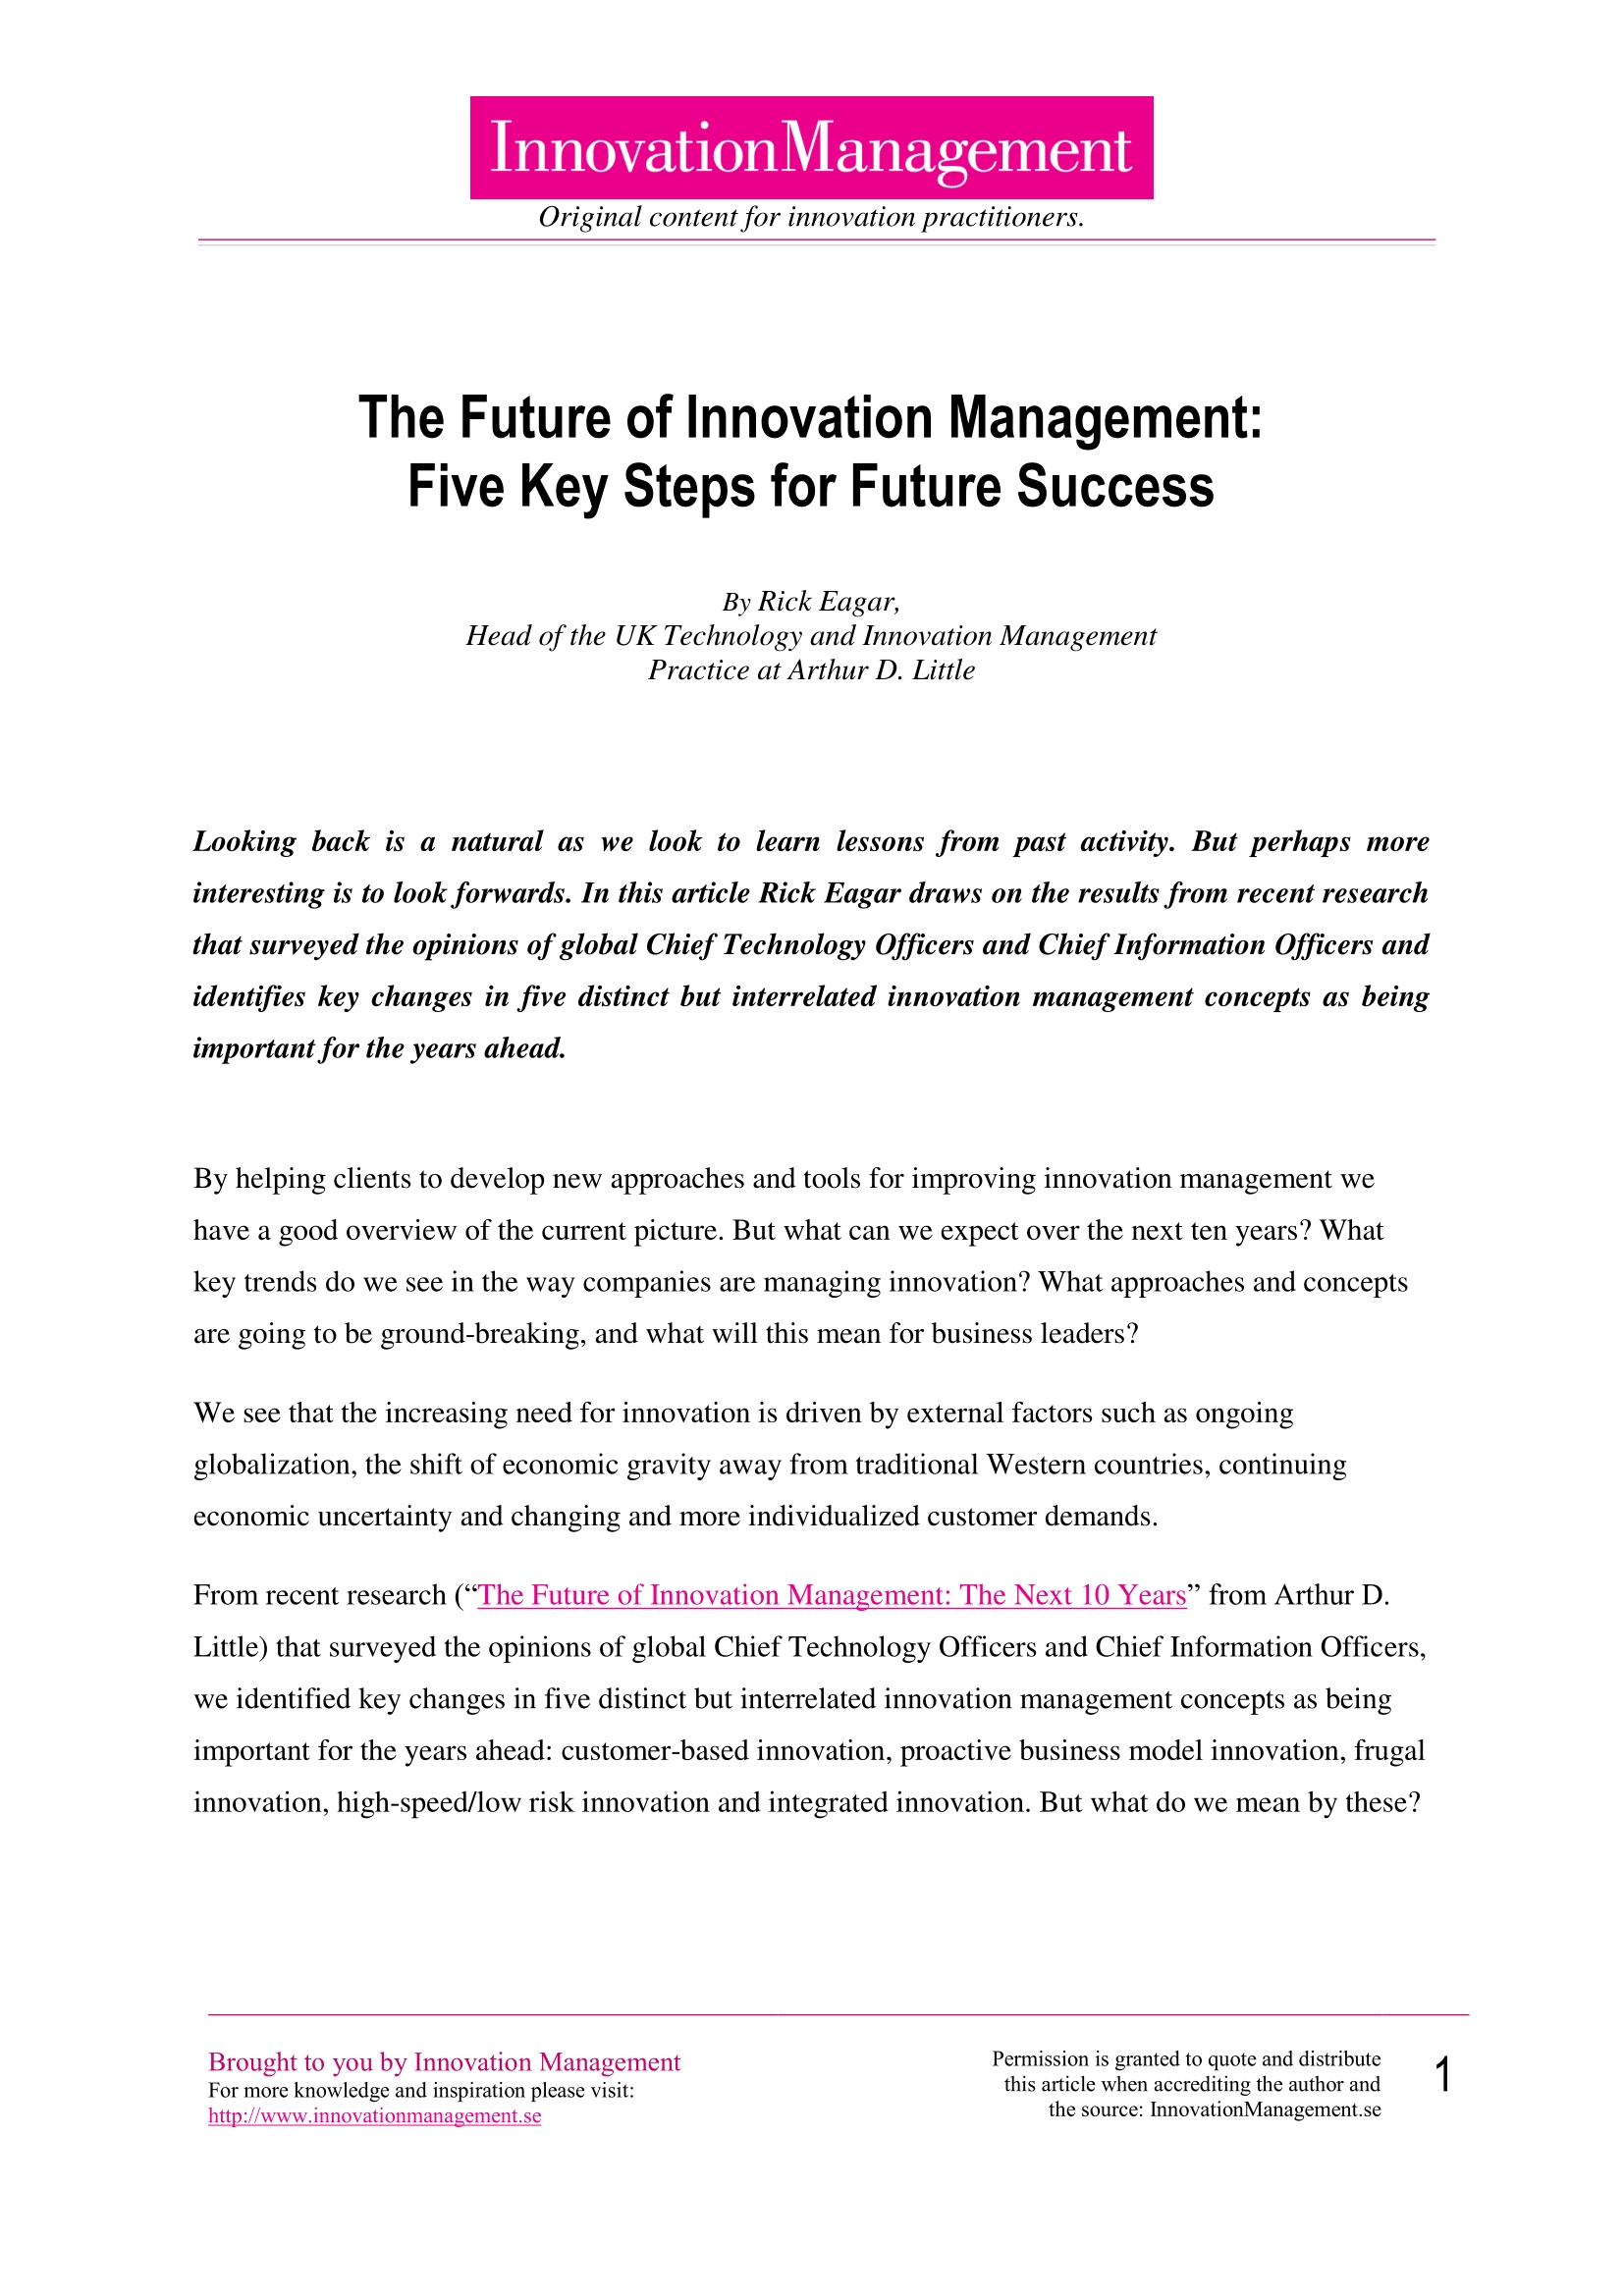 The Future of Innovation Management: Five Key Steps for Future Success_whitepaper